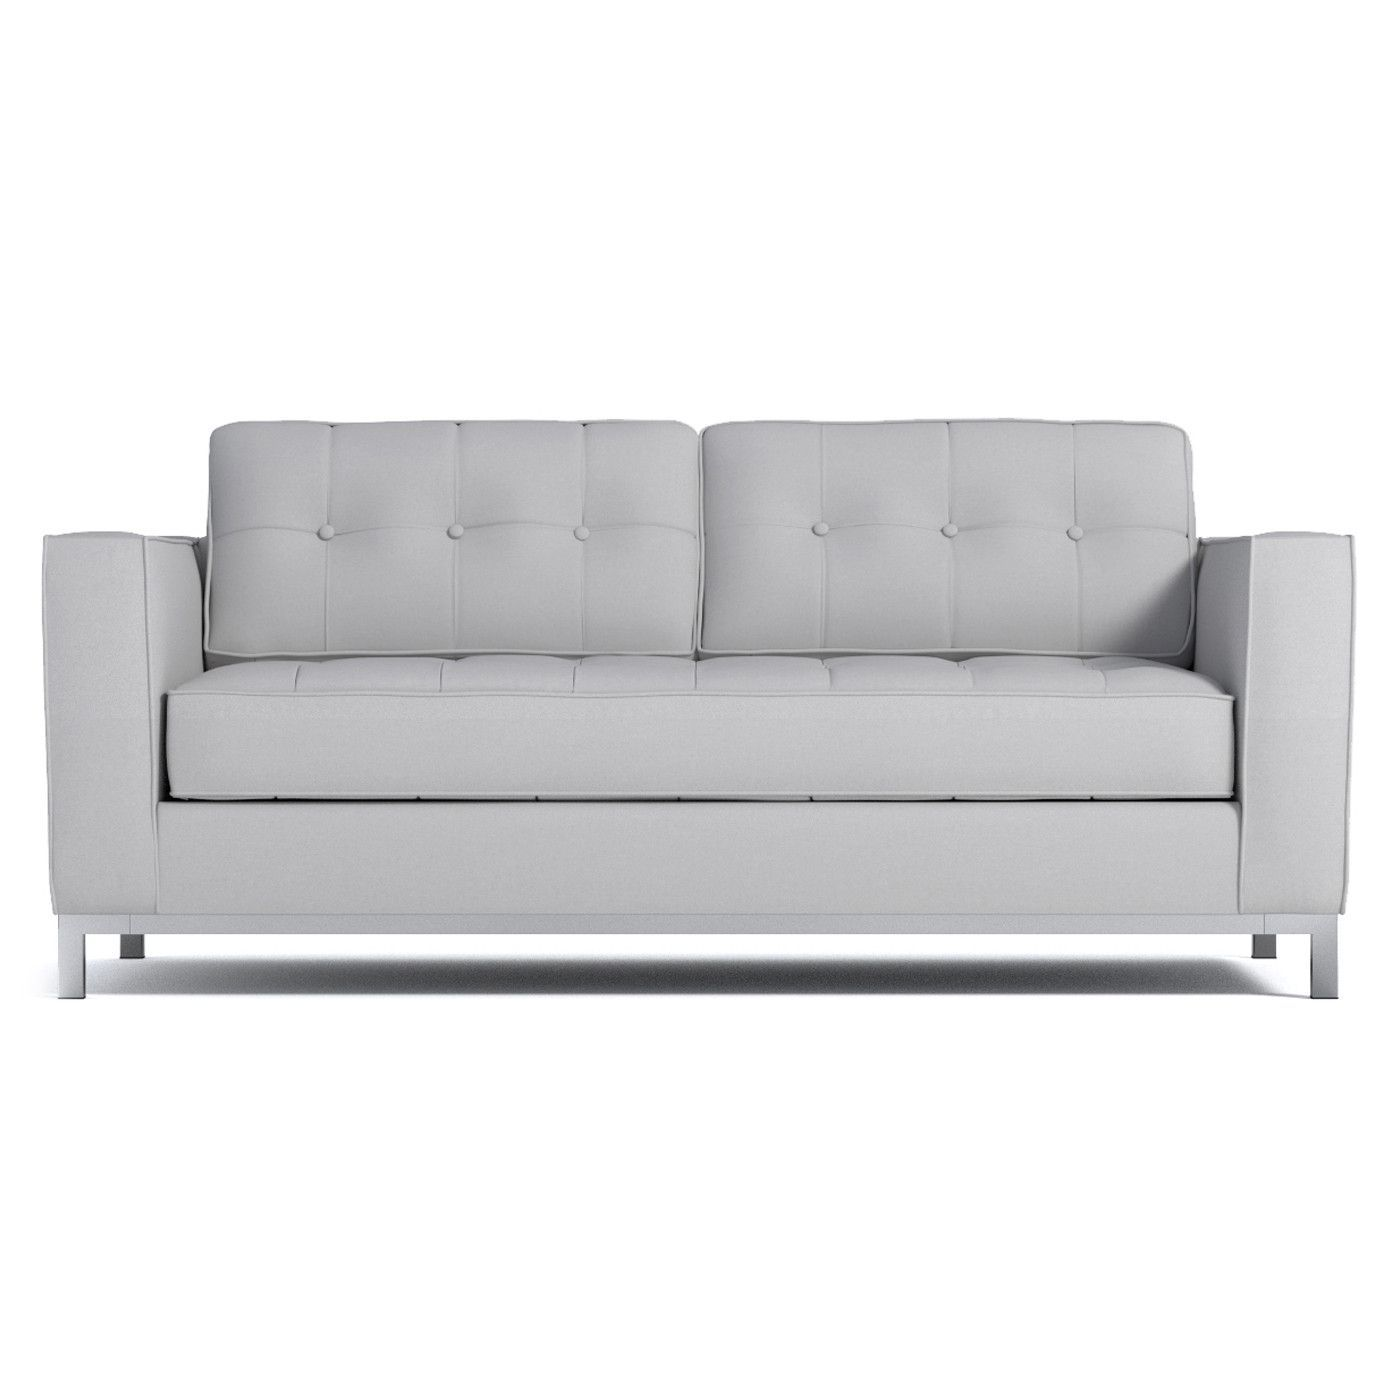 Looking For A Sophisticated And Modern Sofa To Dress Up Your Living Space?  Look No